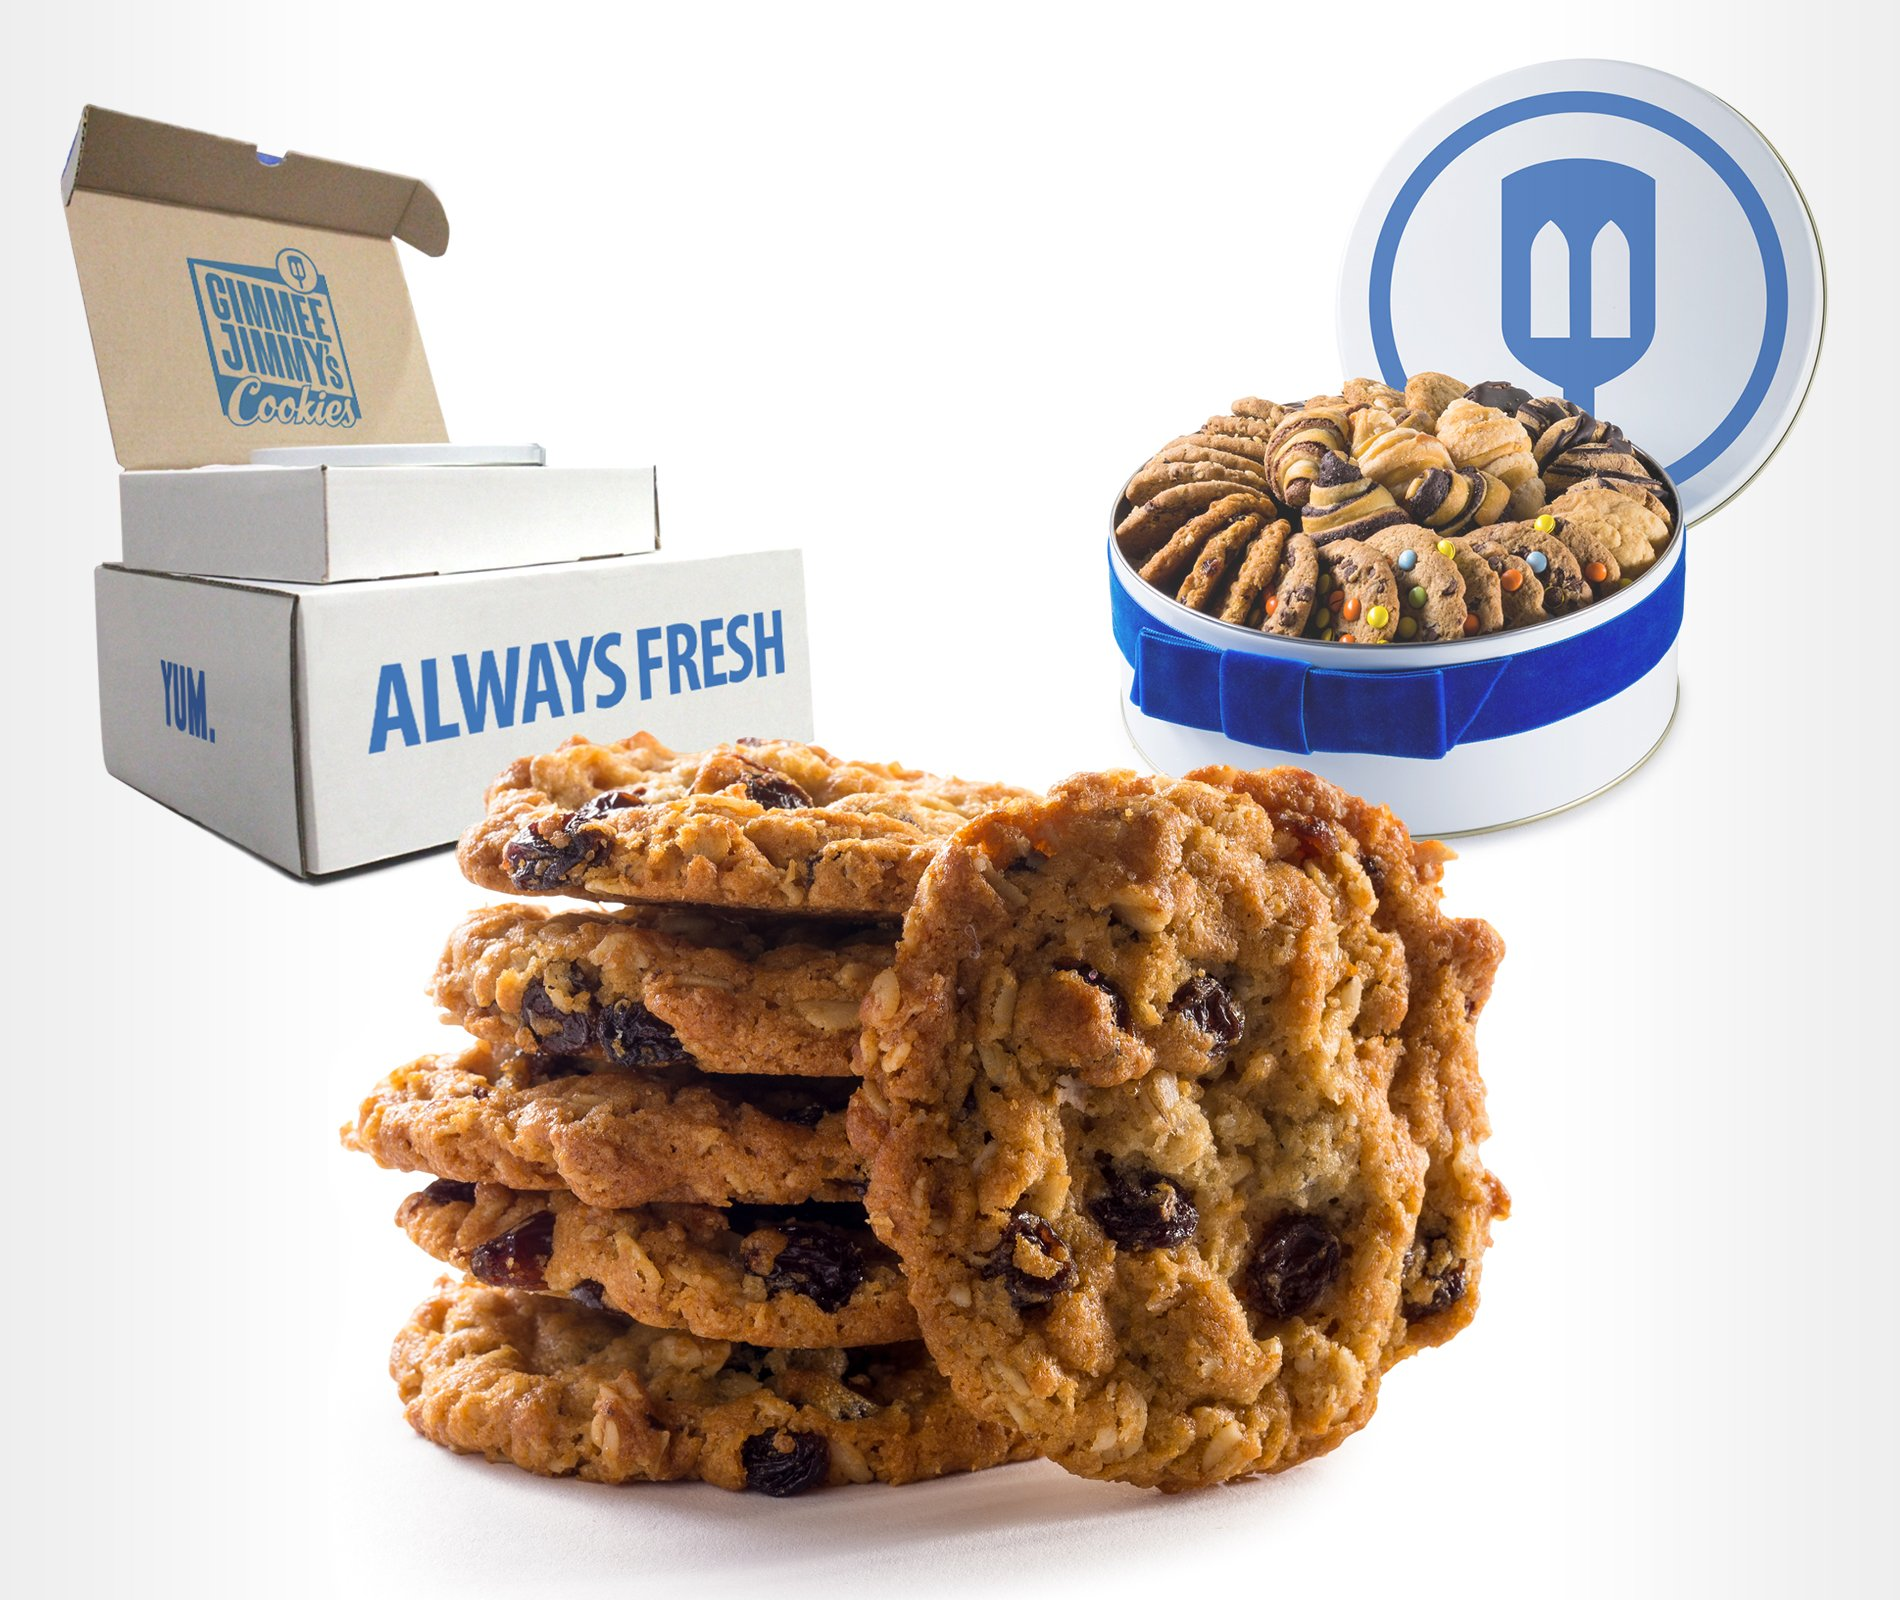 Oatmeal Raisin Cookie Gift Tin From Gimmee Jimmy's Cookies- 2lb | Send the Perfect Corporate, Sympathy, or Birthday Gift with Gimmee Jimmy's Cookies and Bakery